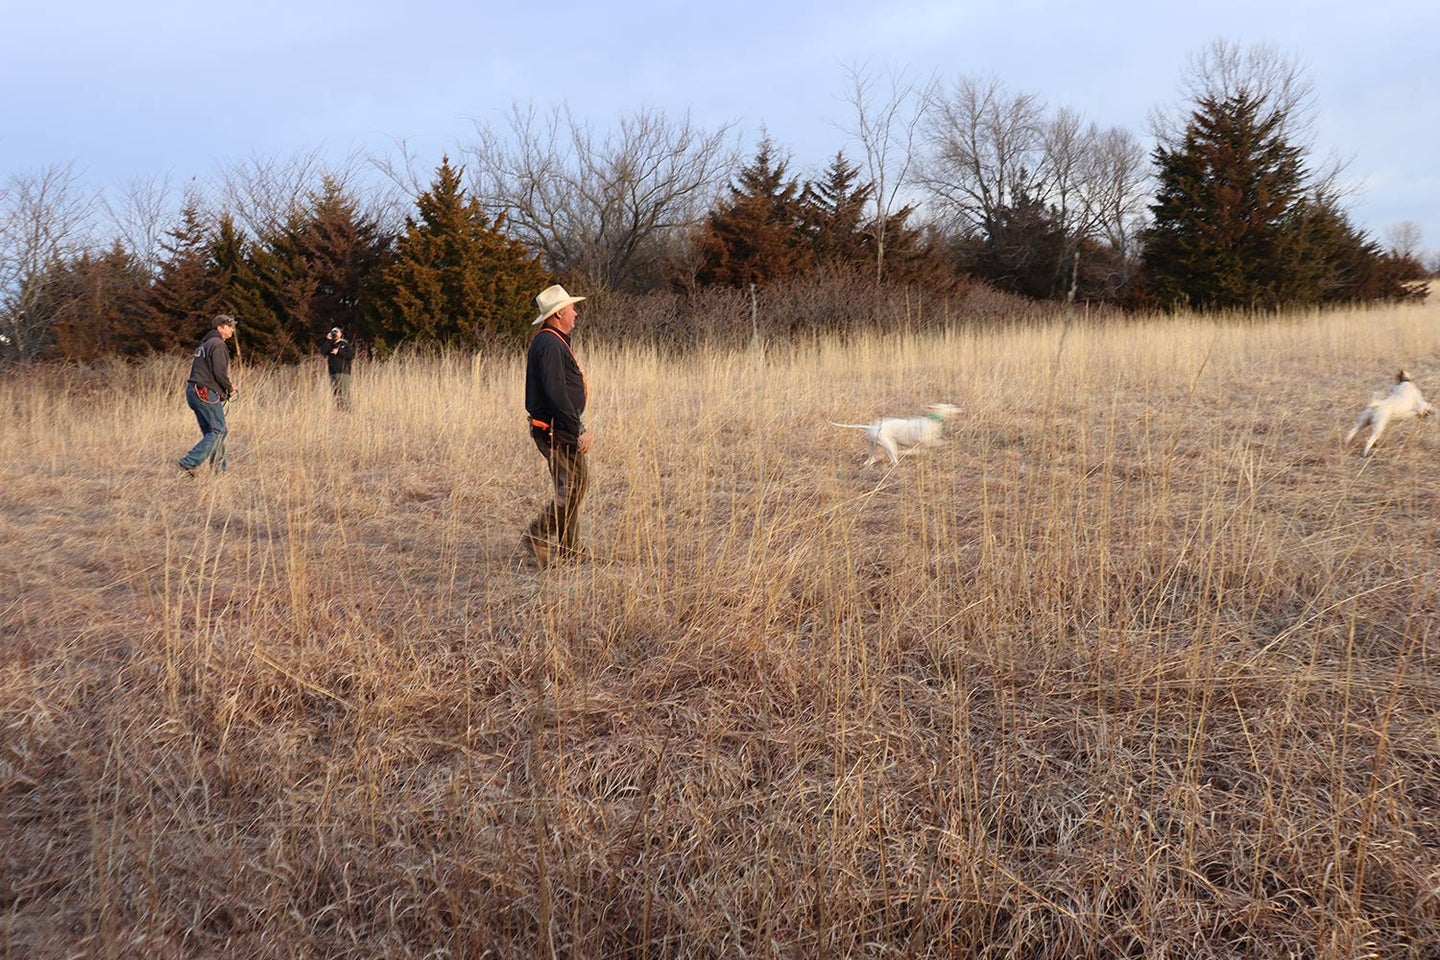 Hunters in a field with their hunting dogs.